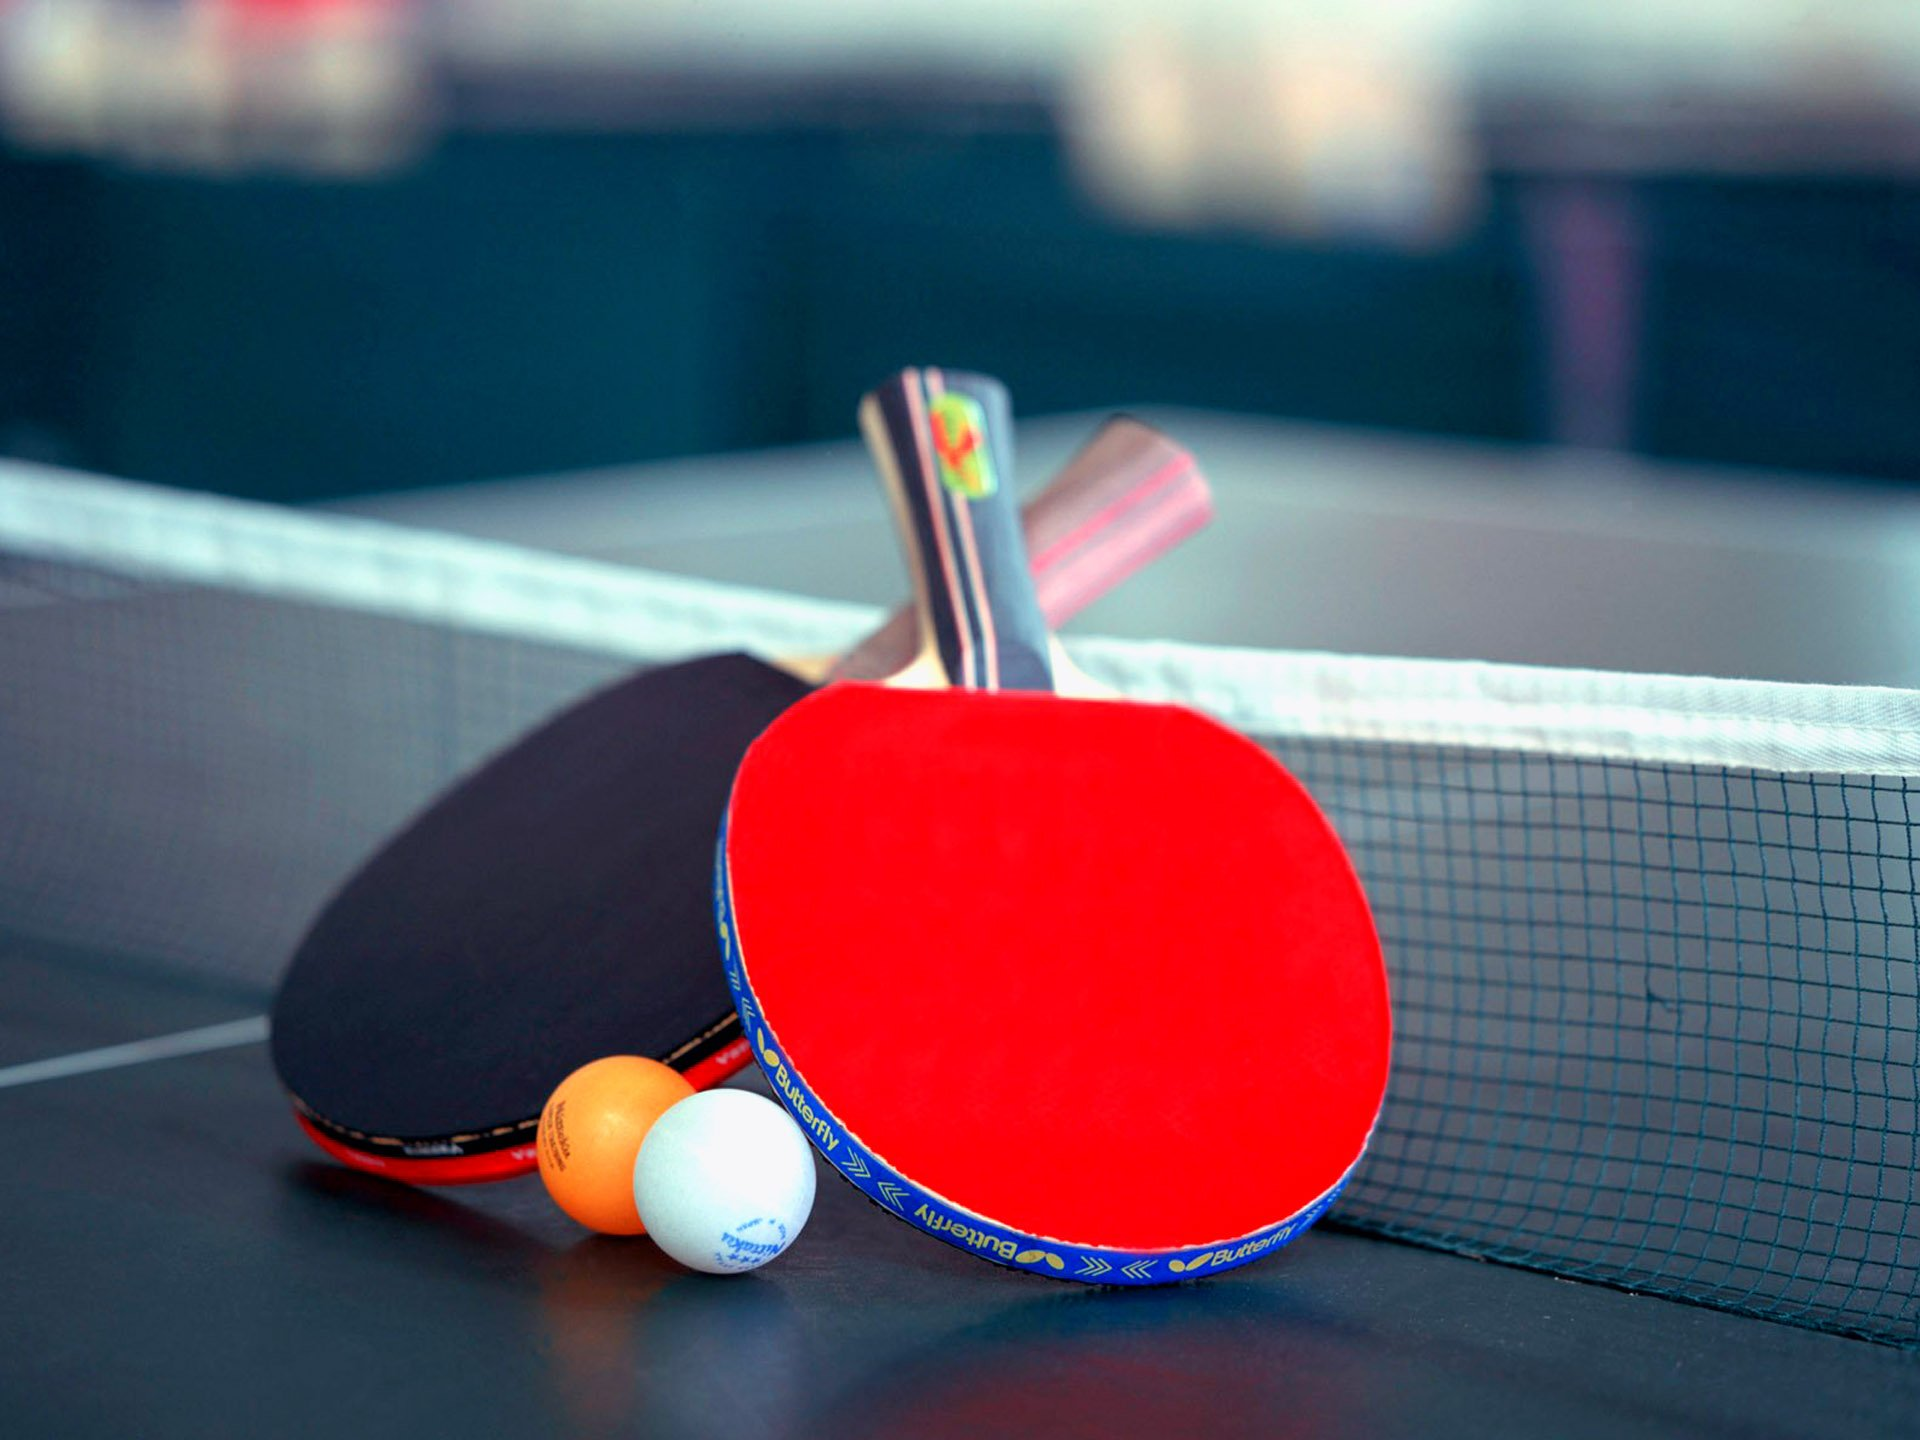 Image result for table tennis images free